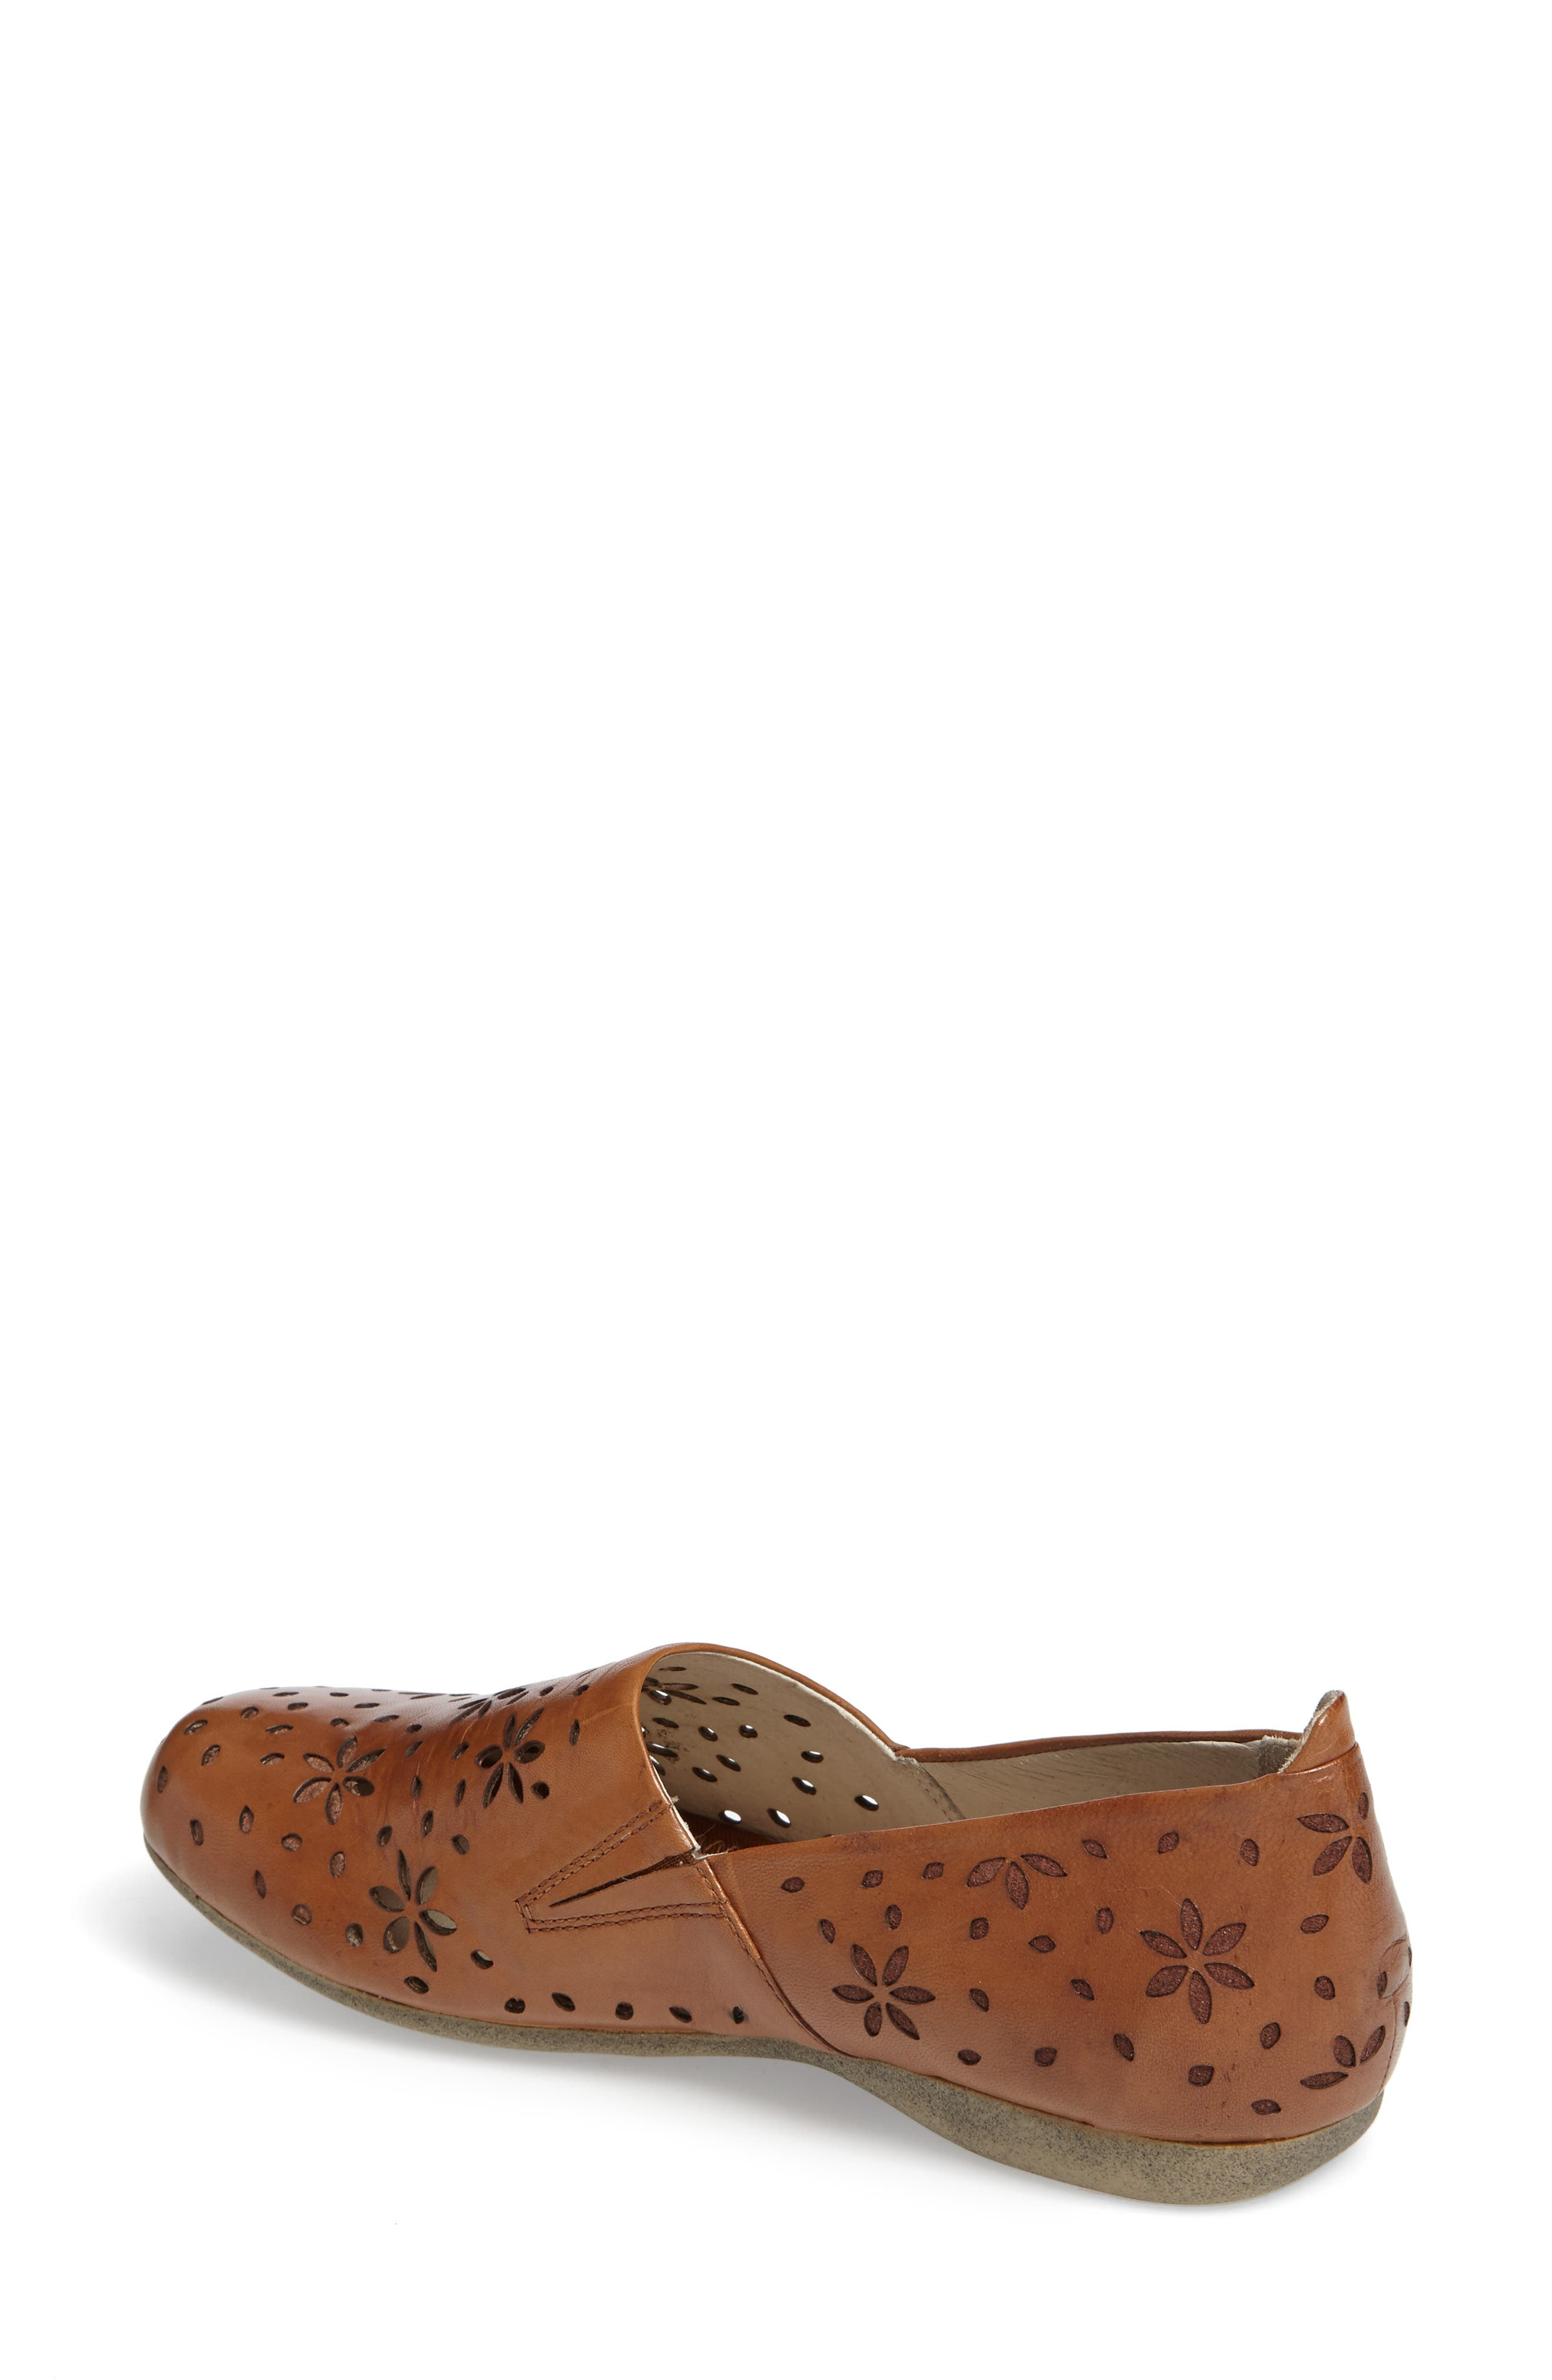 Fiona 31 Perforated Flat,                             Alternate thumbnail 5, color,